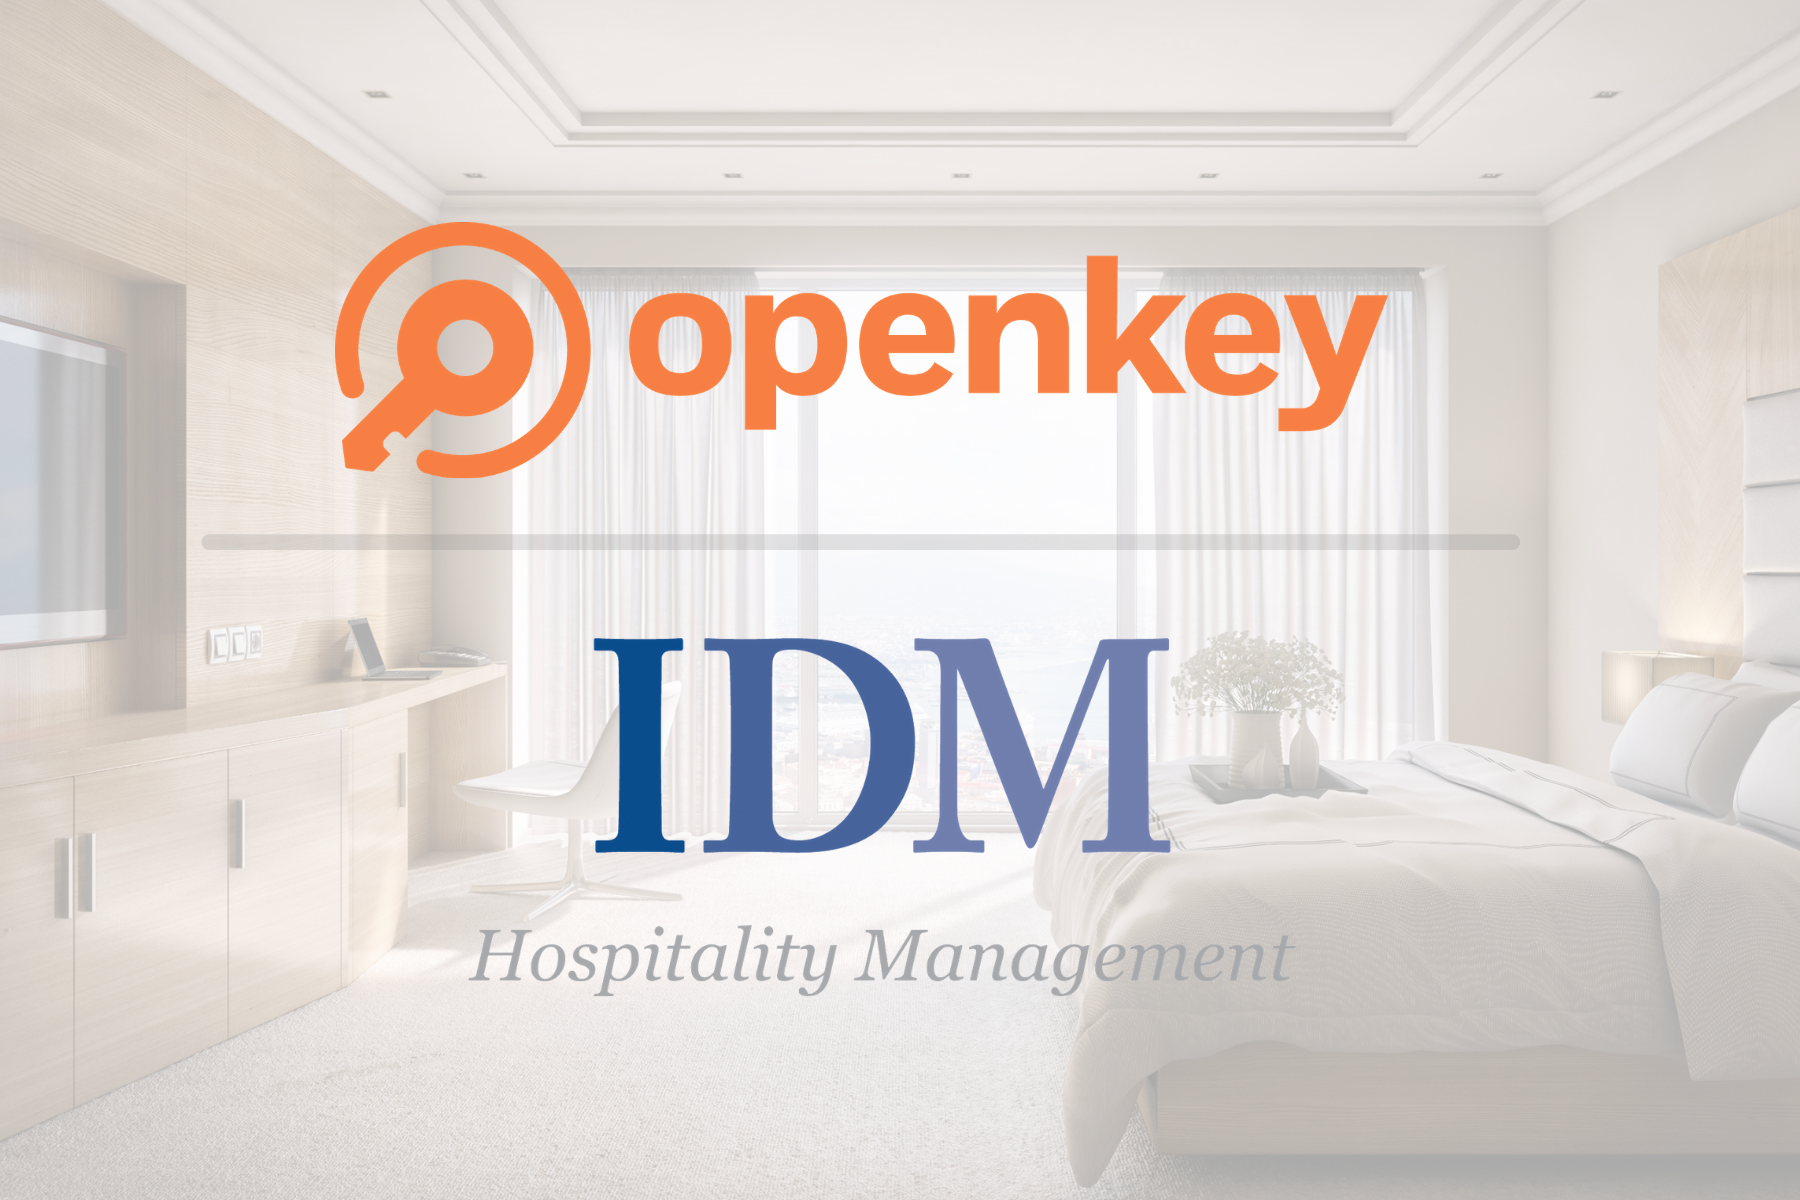 OpenKey has Partnered with IDM Hospitality to Provide Contactless Check-in at their Hotels